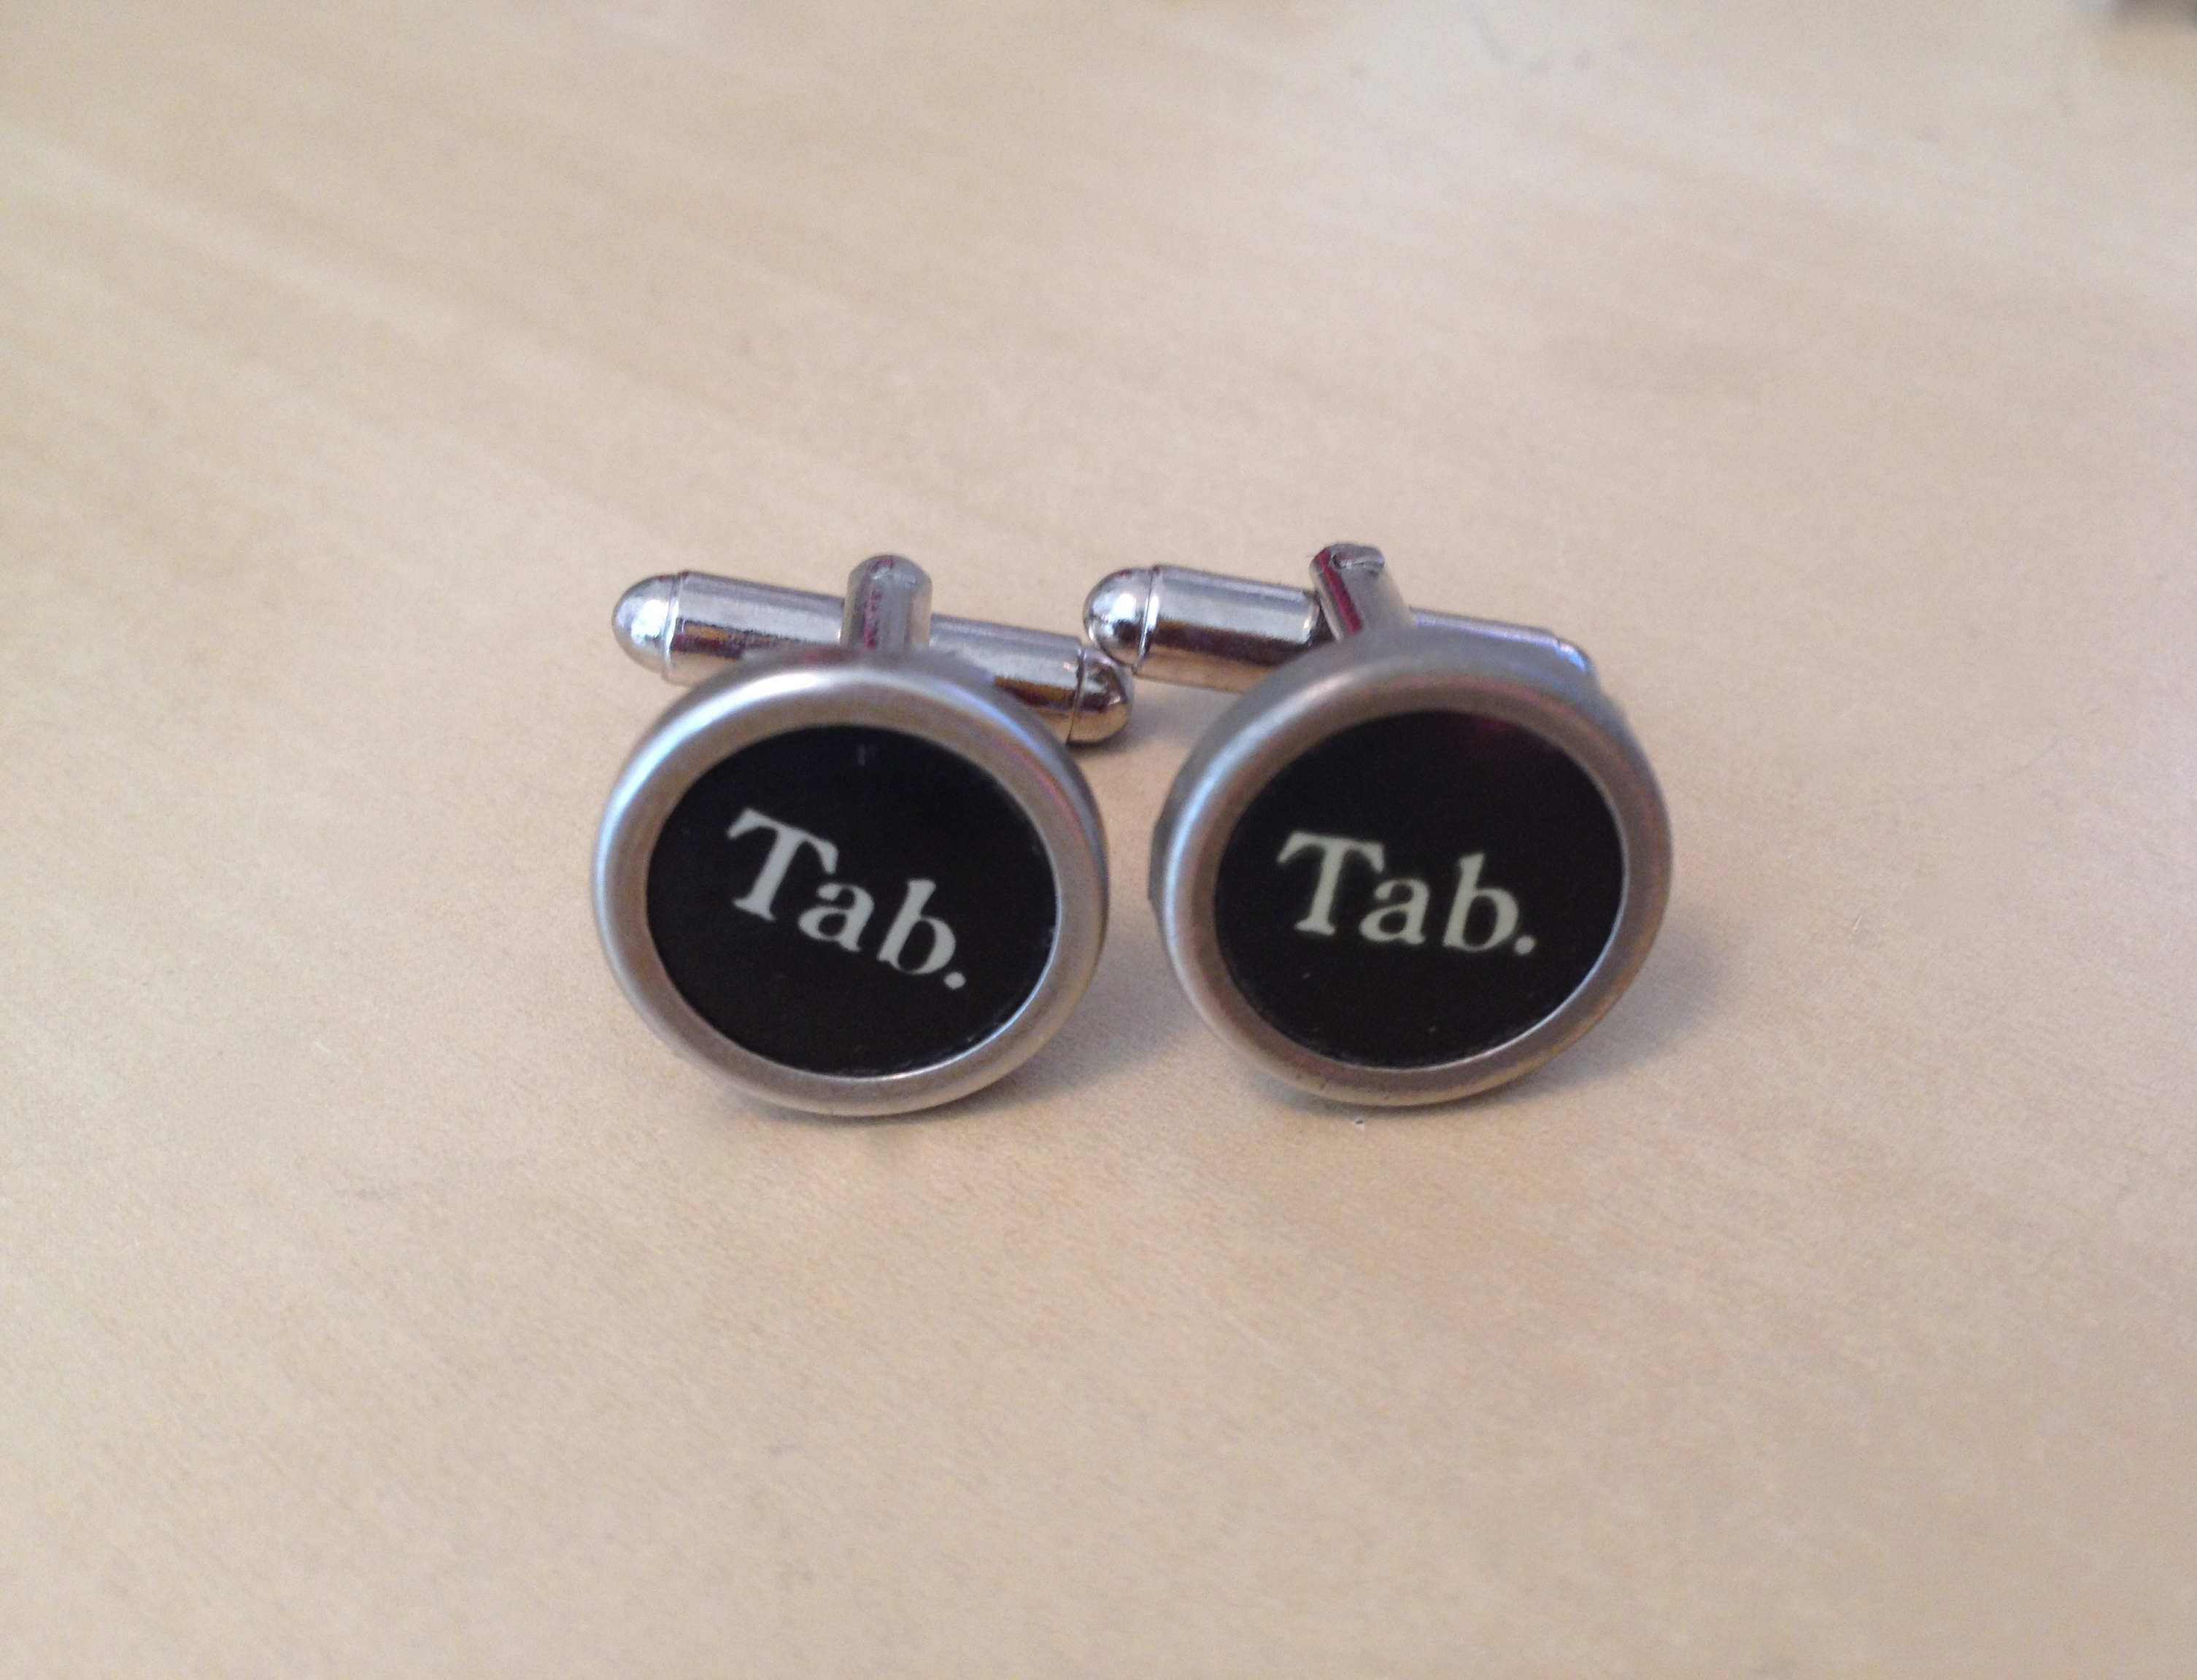 Black Tab Typewriter Key Cufflinks